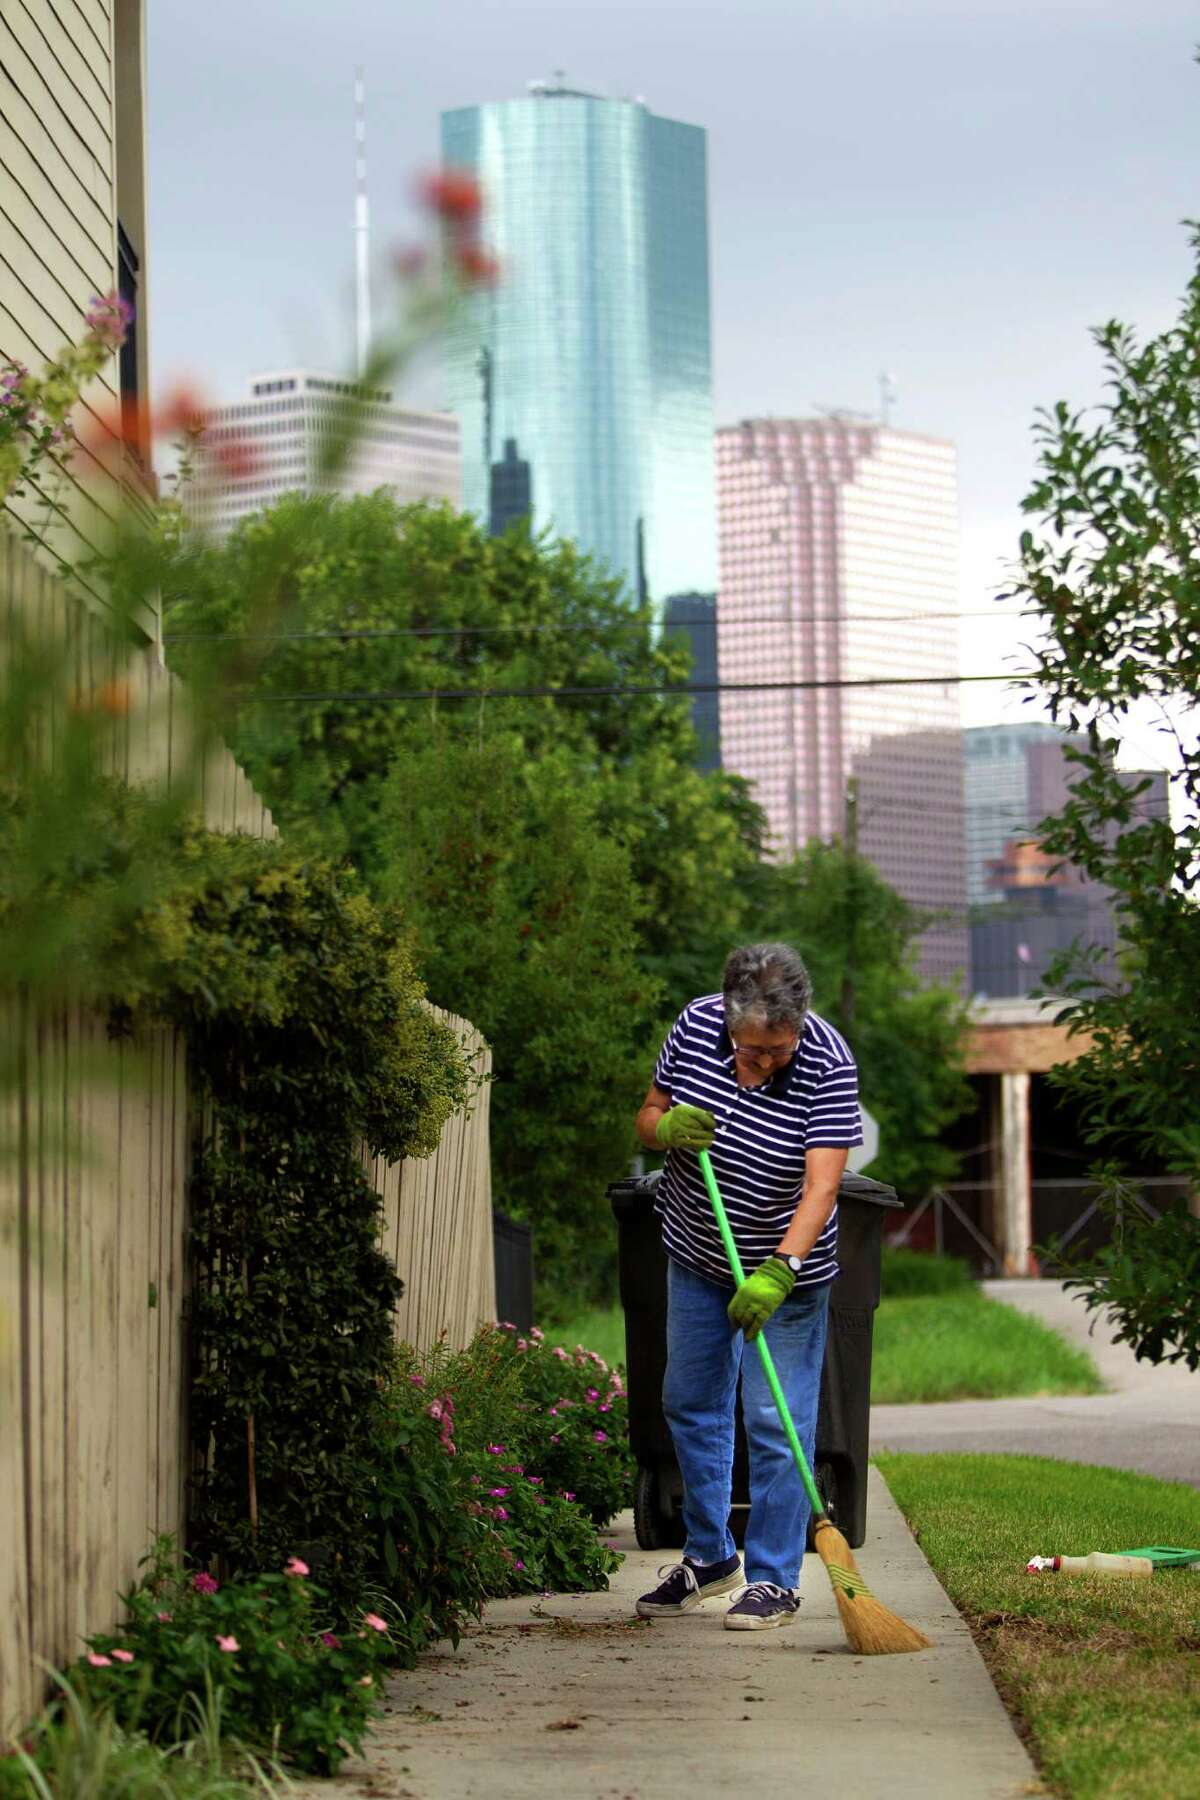 """Marjorie Fruge sweeps her sidewalk next to her town home in the First Ward the Friday, Sept. 27, 2013, in Houston. Fruge said she likes the changes she's seen since she moved to the neighborhood in 2005. """"This was a dump,"""" Fruge said about the home across the street from her town house. """"I use to watch out of my kitchen window and watch drug deals. (The neighborhood) is changing fast."""""""